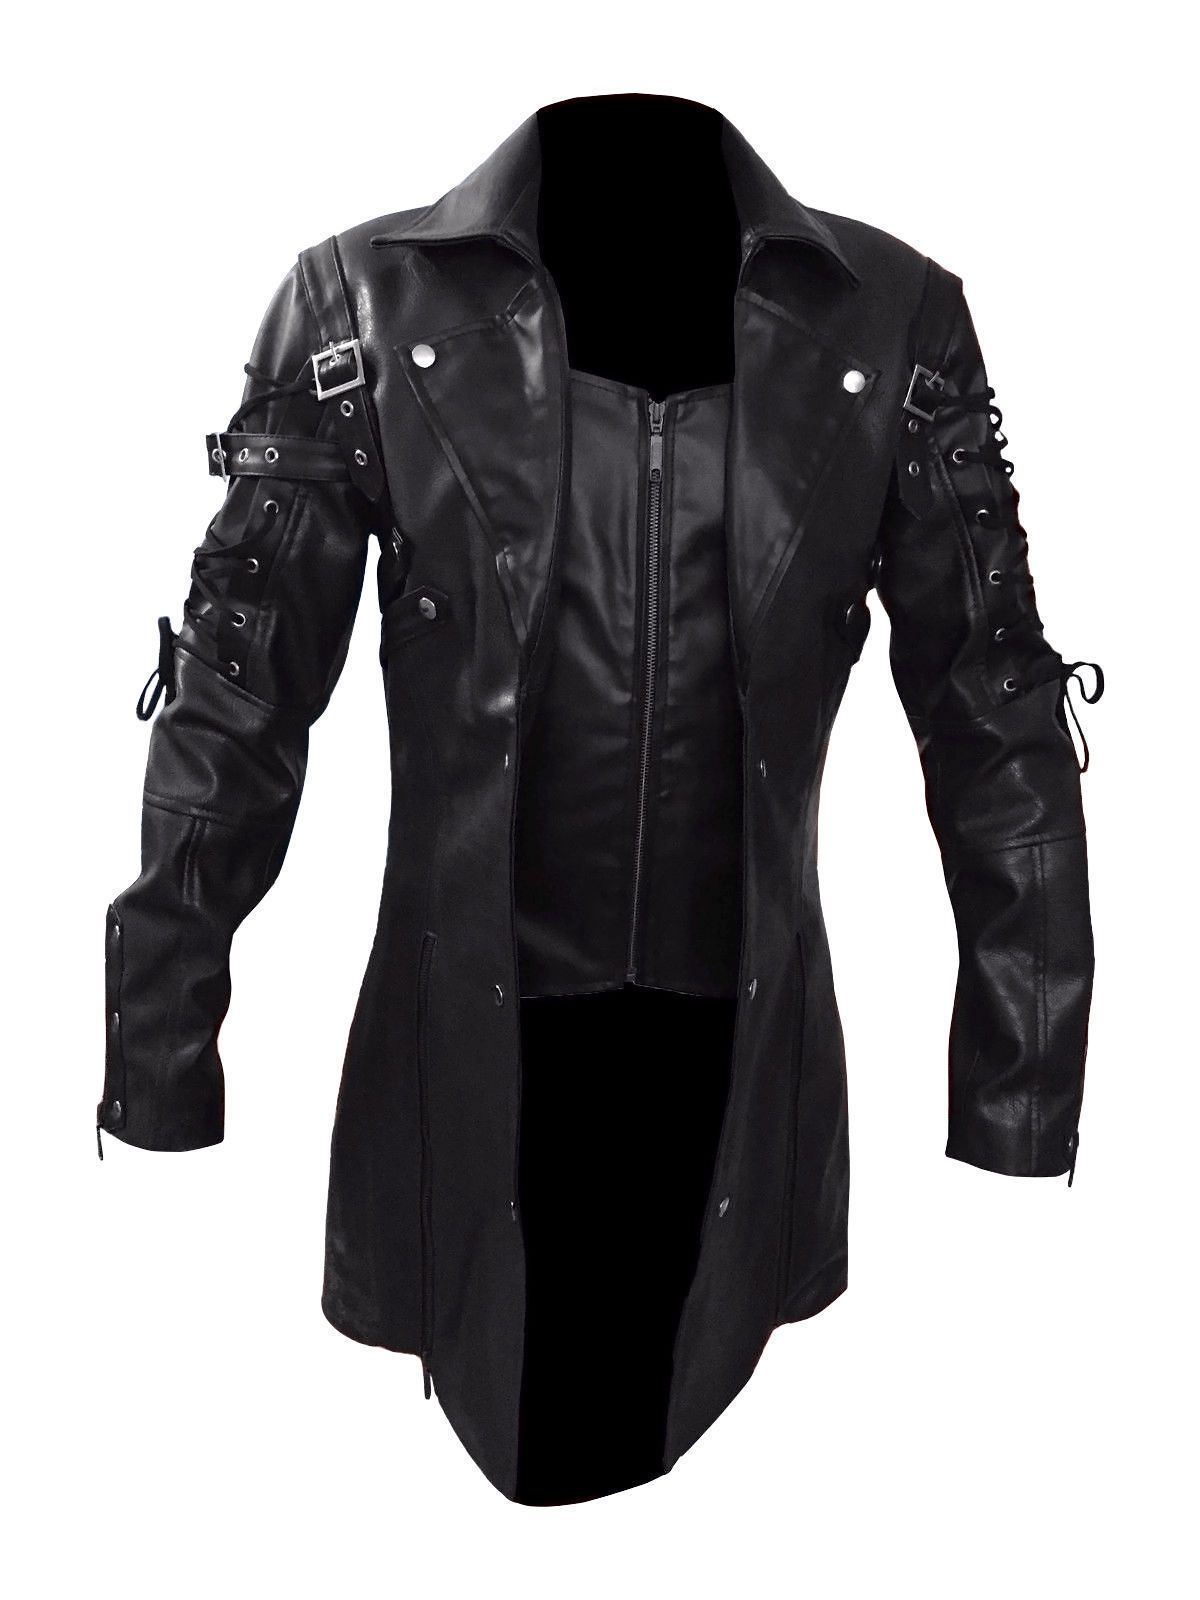 Stylish and Funky Steampunk Men's Gothic Trench Coat